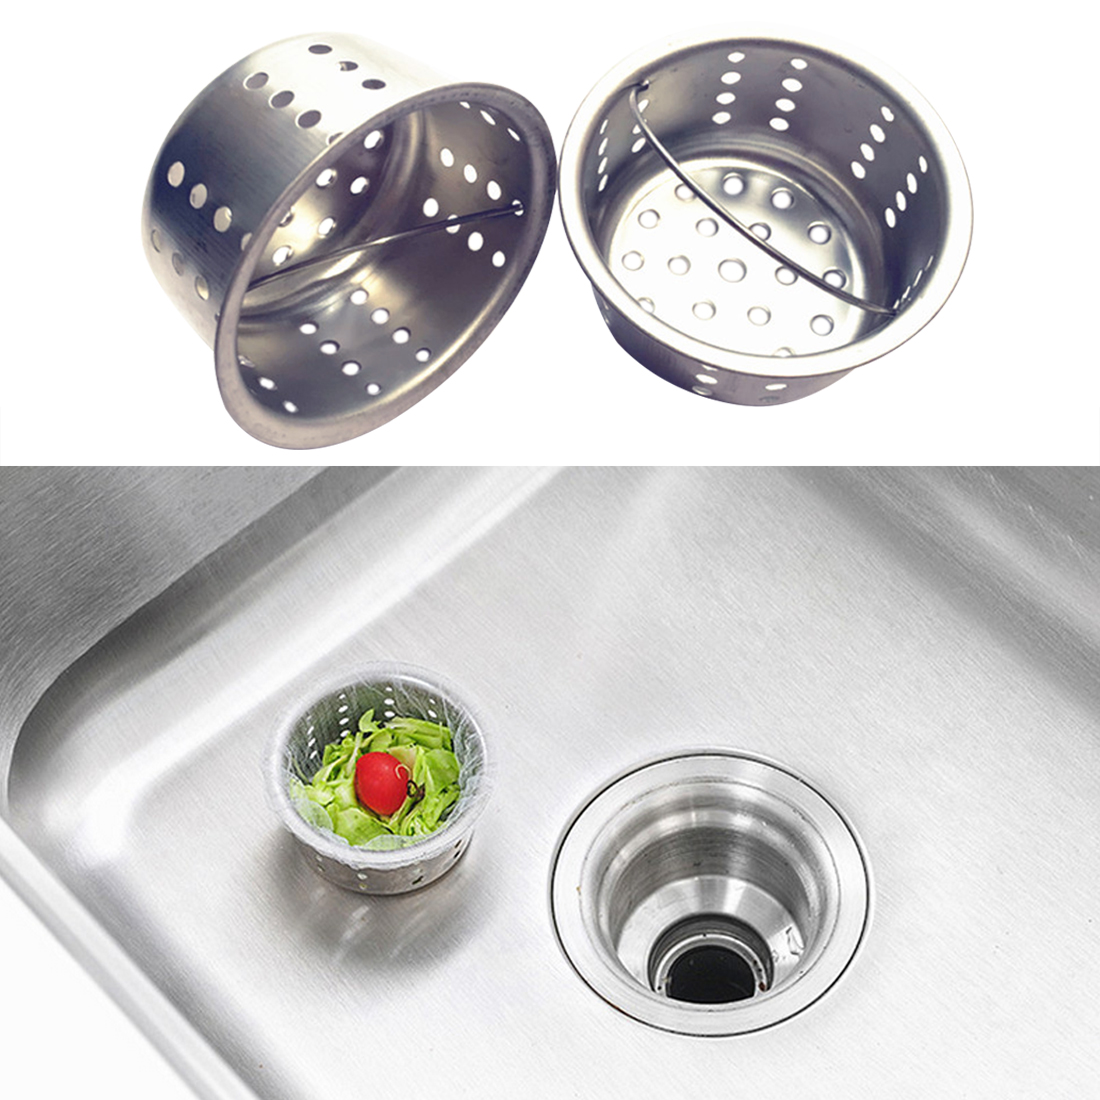 sink-strainer-stainless-steel-kitchen-drainer-accessories-for-sink-with-handle-waste-stopper-filter-colander